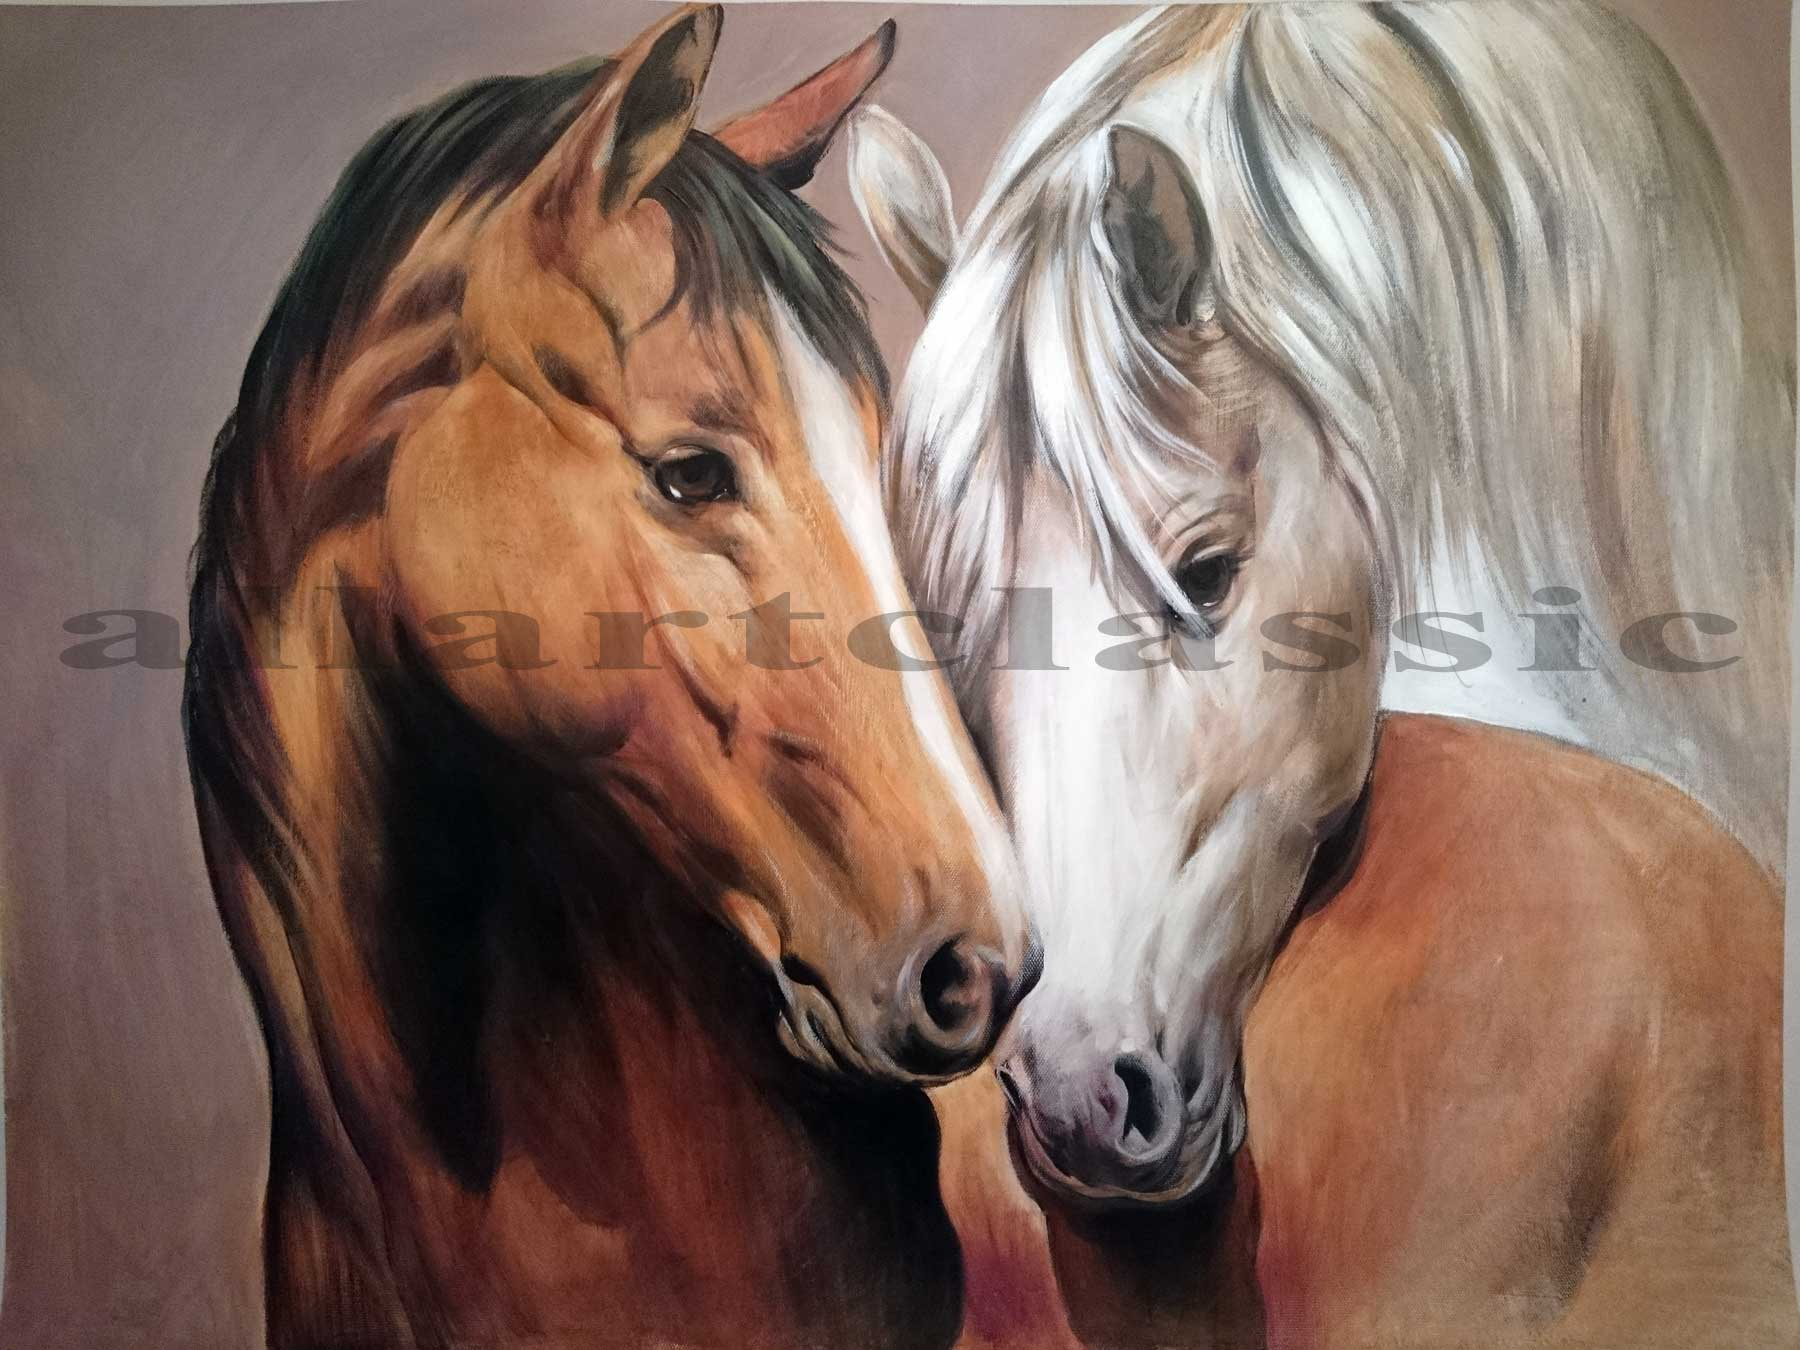 Art Reproductions And Original Oil Paintings Landscapes Two Horses Heads Portrait Painting Two Horses 2017